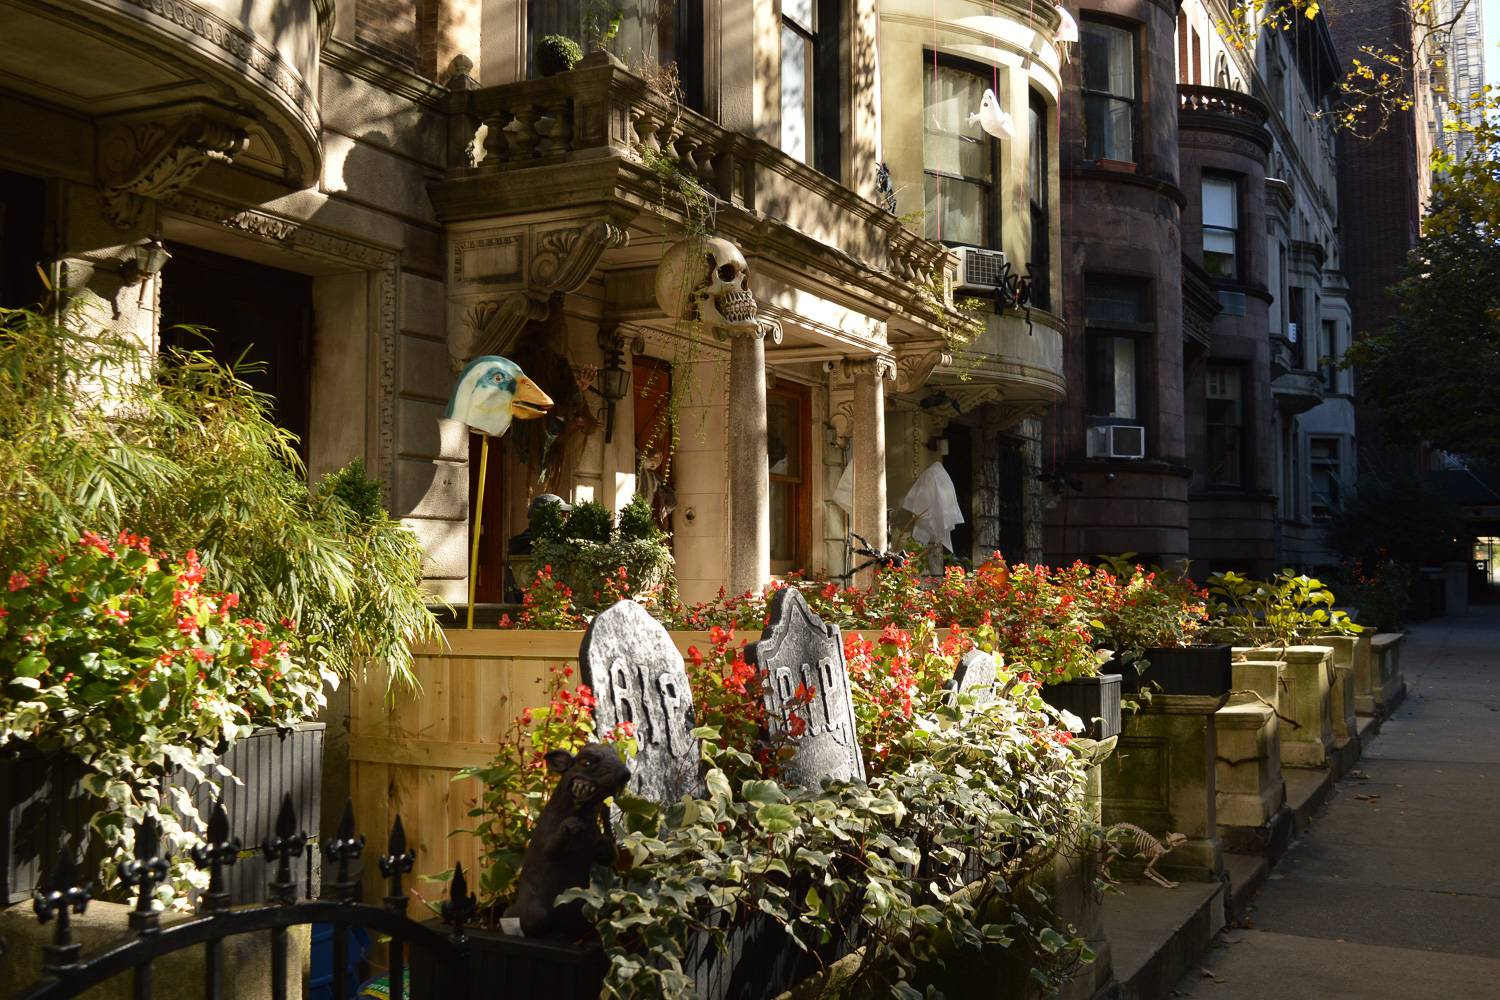 An image of a Halloween decorations in front of a Manhattan apartment.